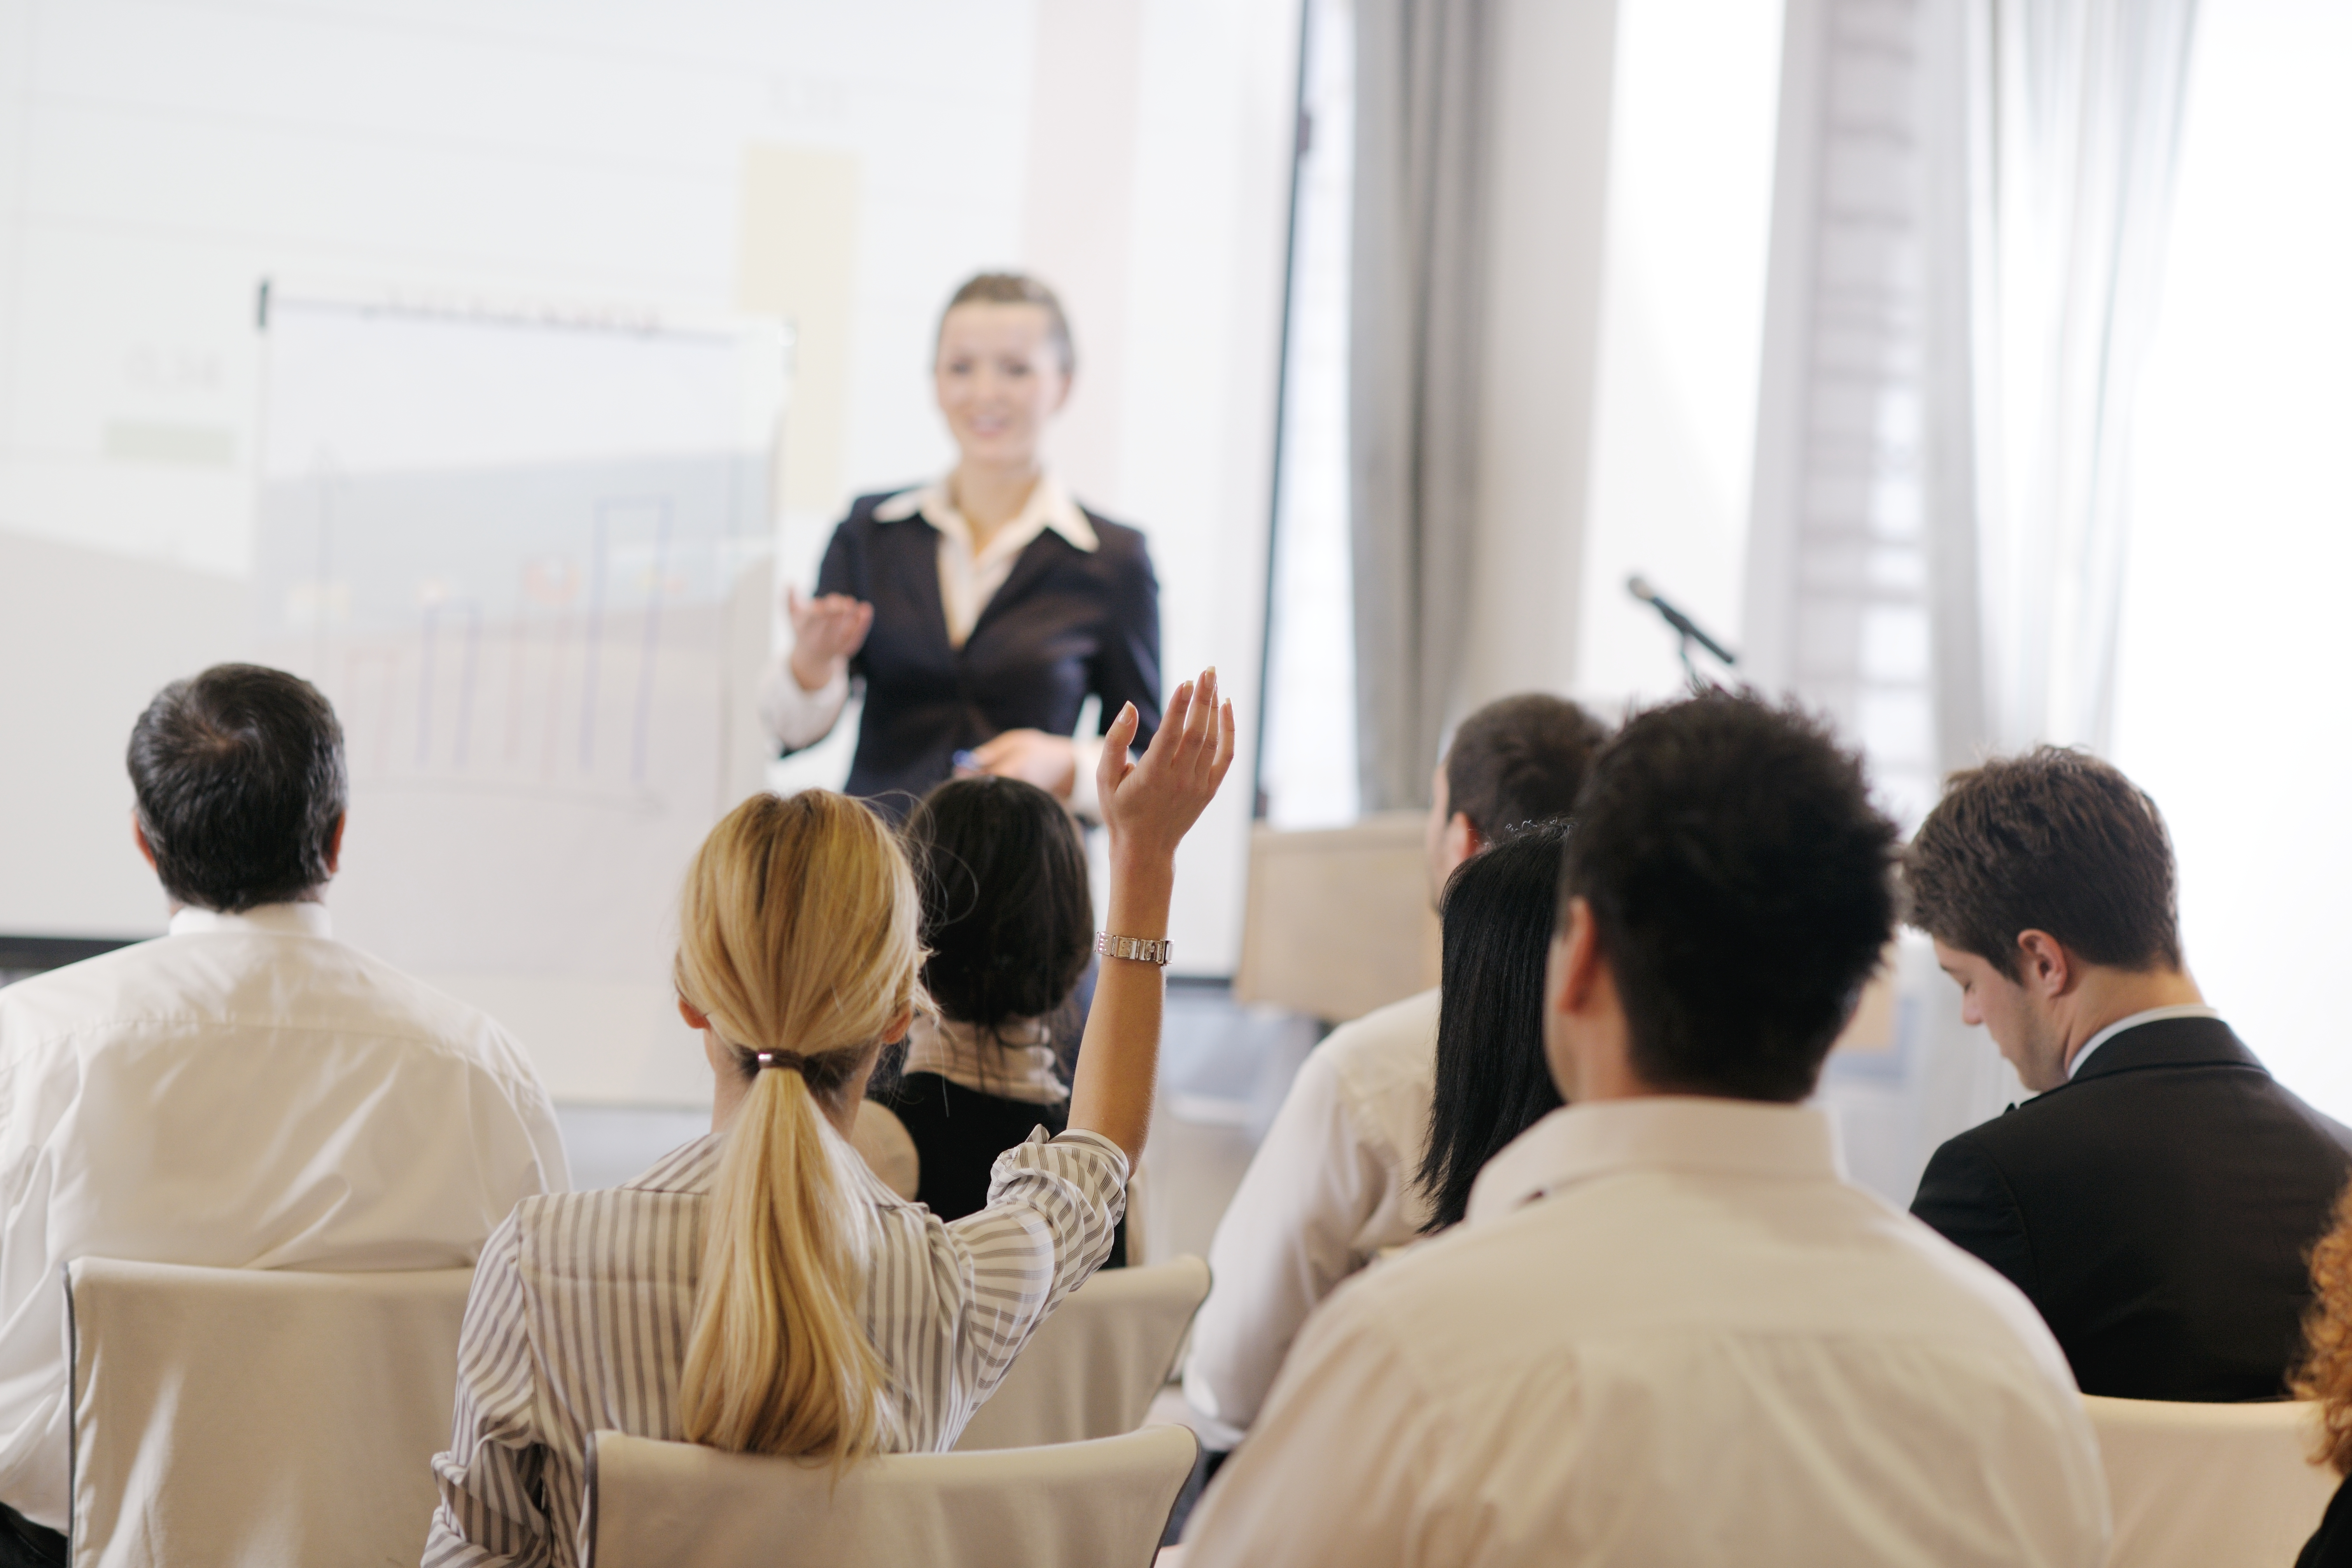 Video-conference presentations require audience participation just like in person presentations